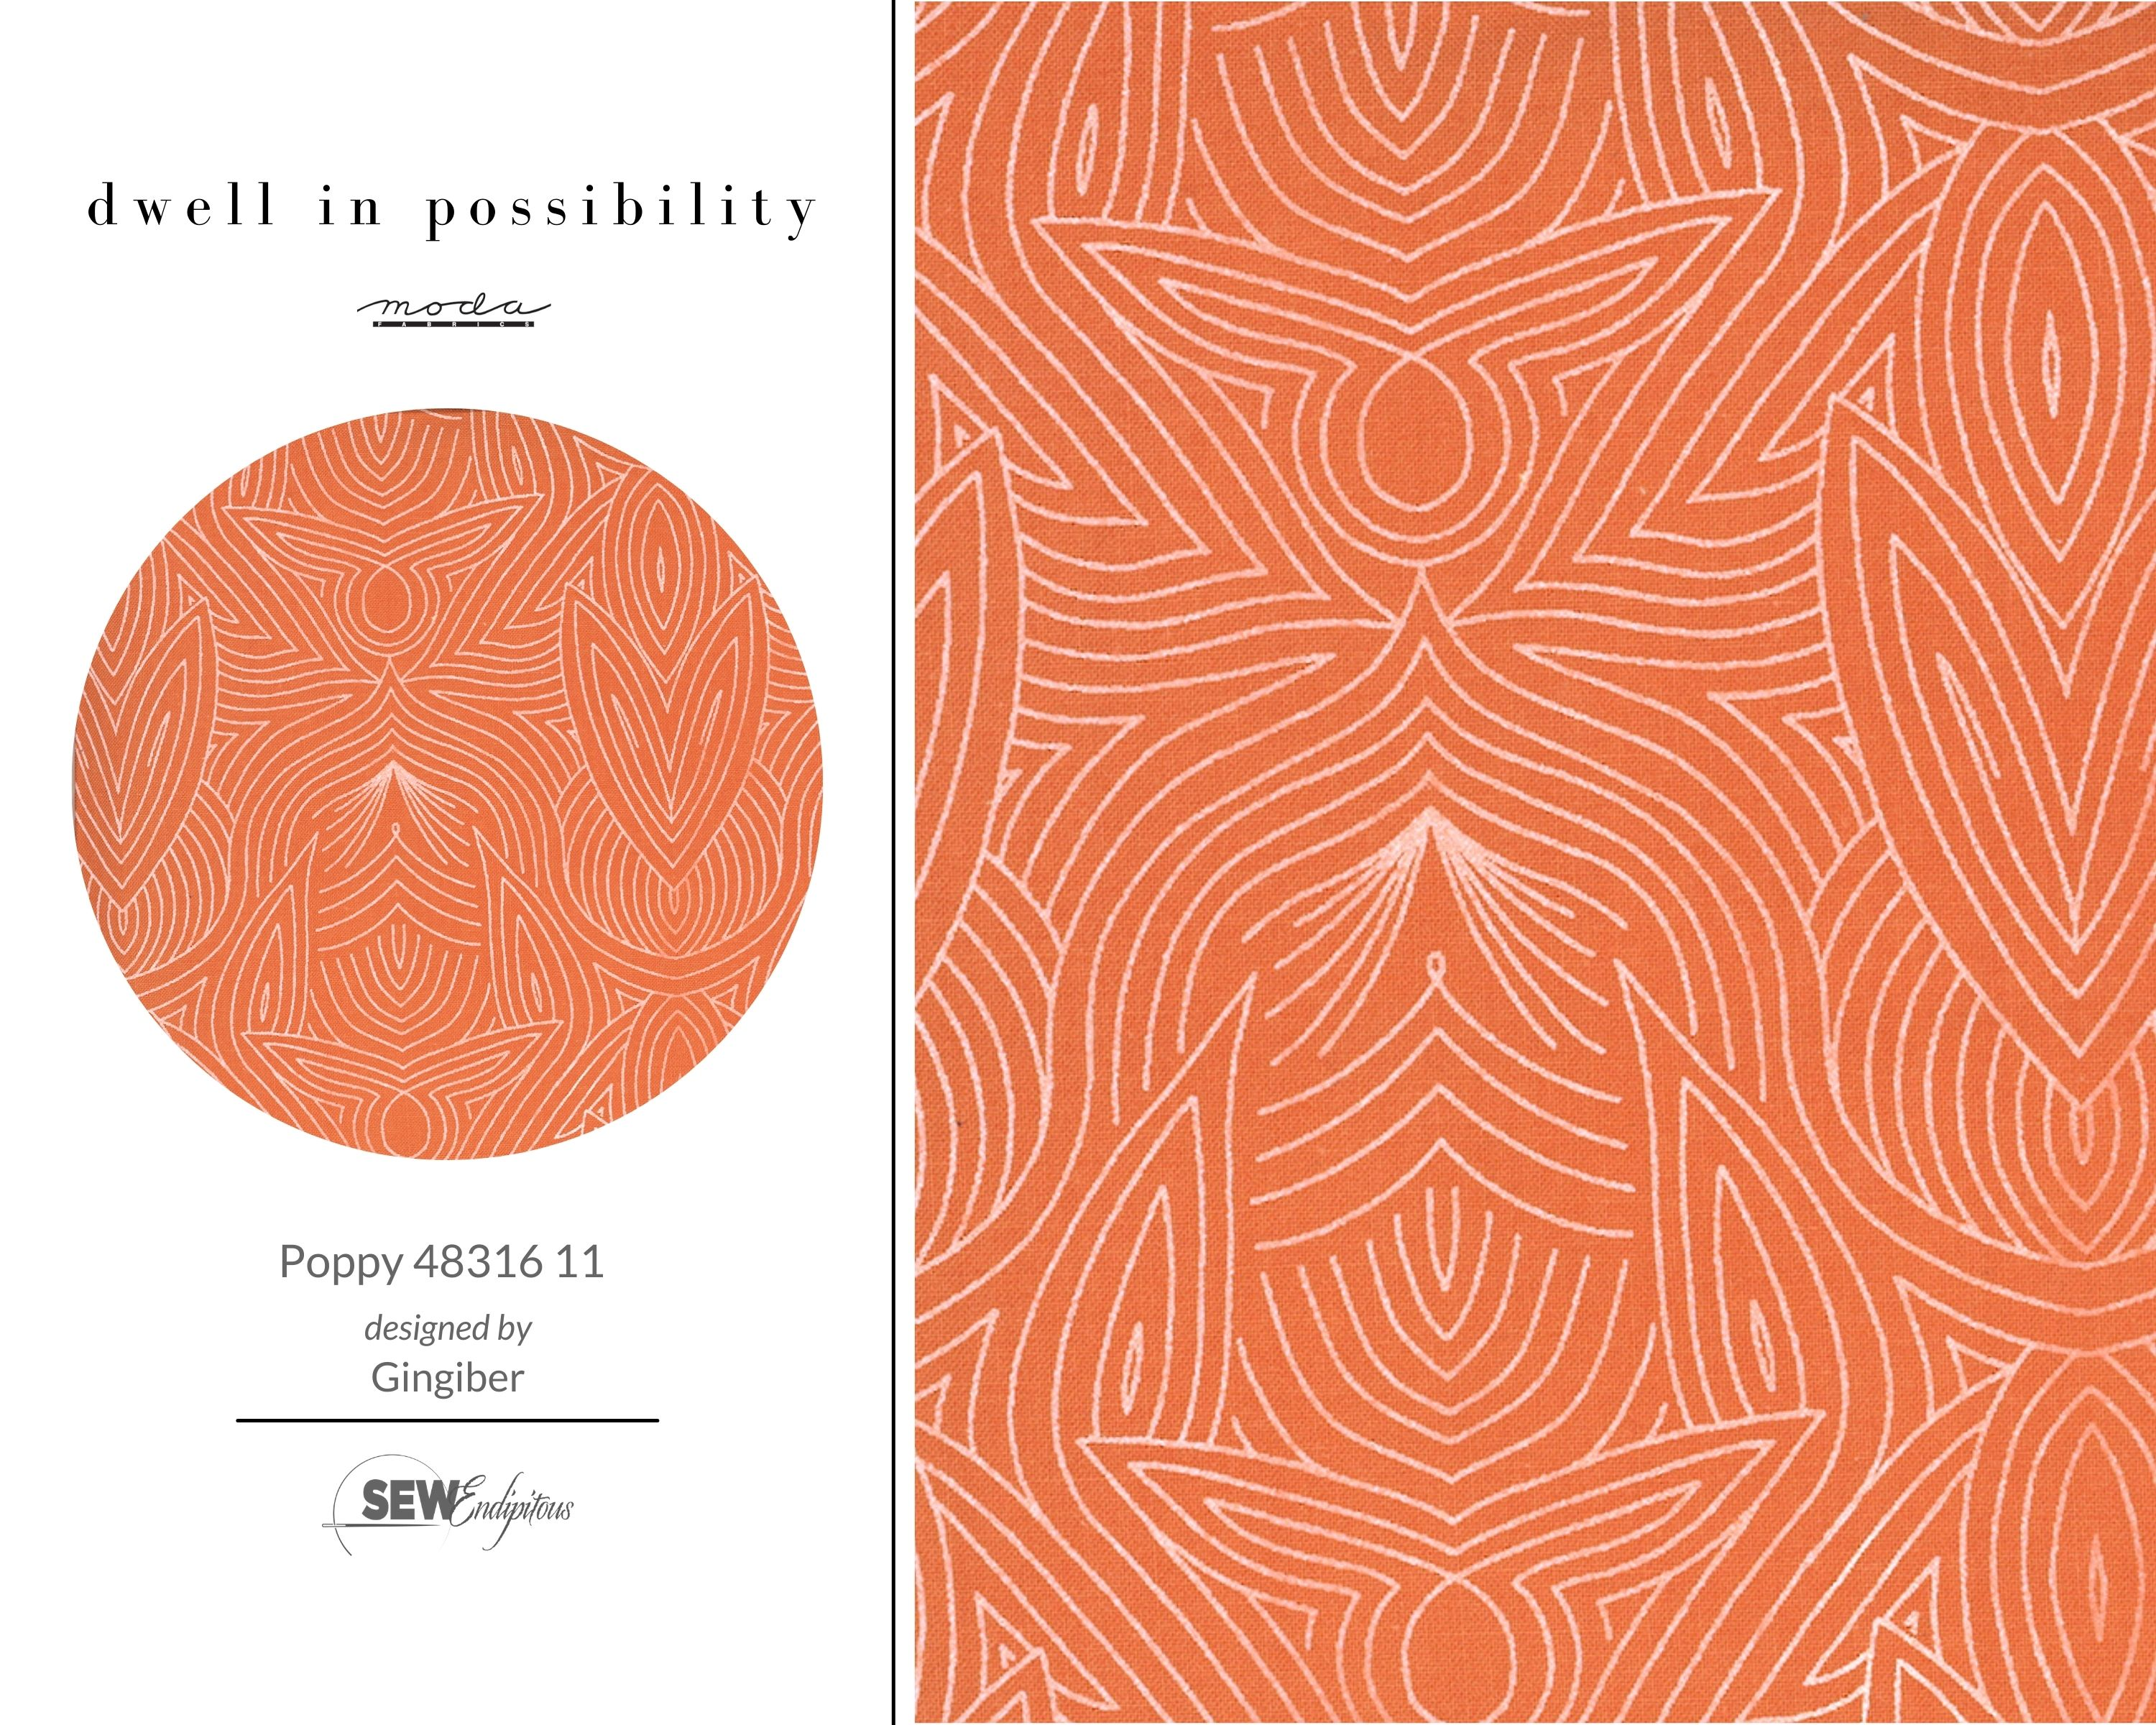 Dwell in Possibility - Poppy 48316 11